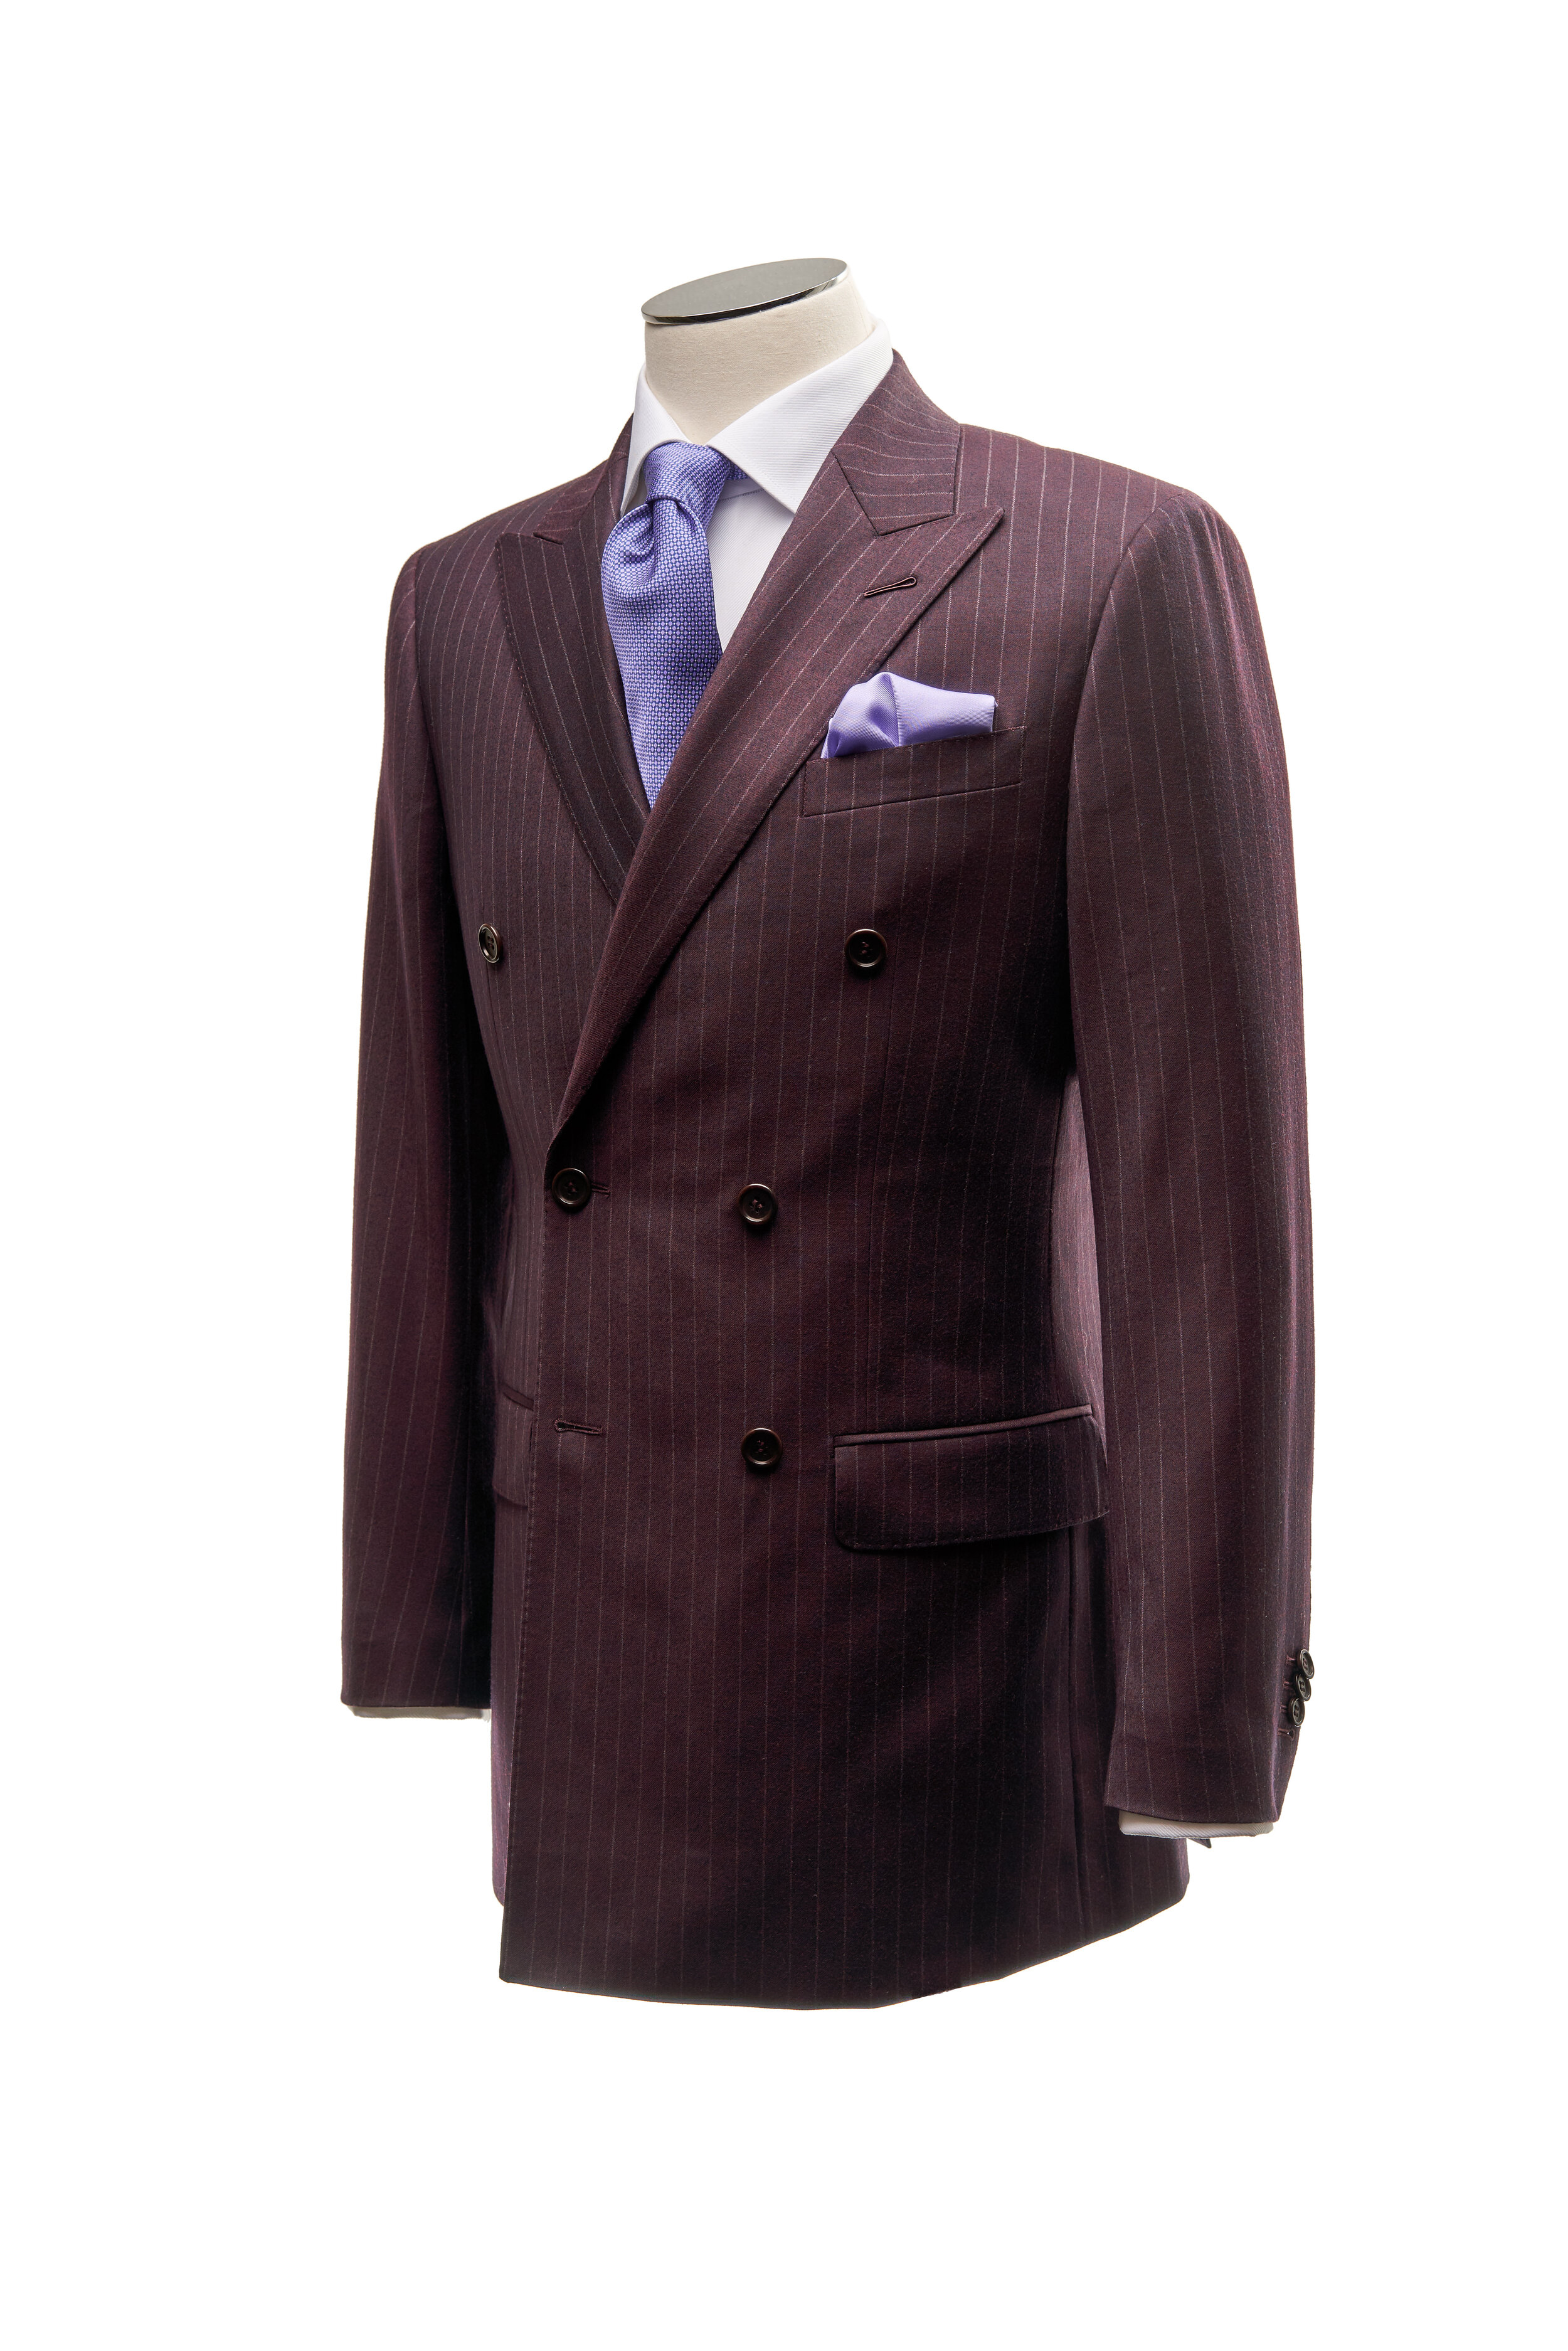 Burgundy Pinstriped - Double breasted burgundy pinstripe suit. Six button four closure, peak lapel. Cloth composition 100% wool, Super 110's, 290g.